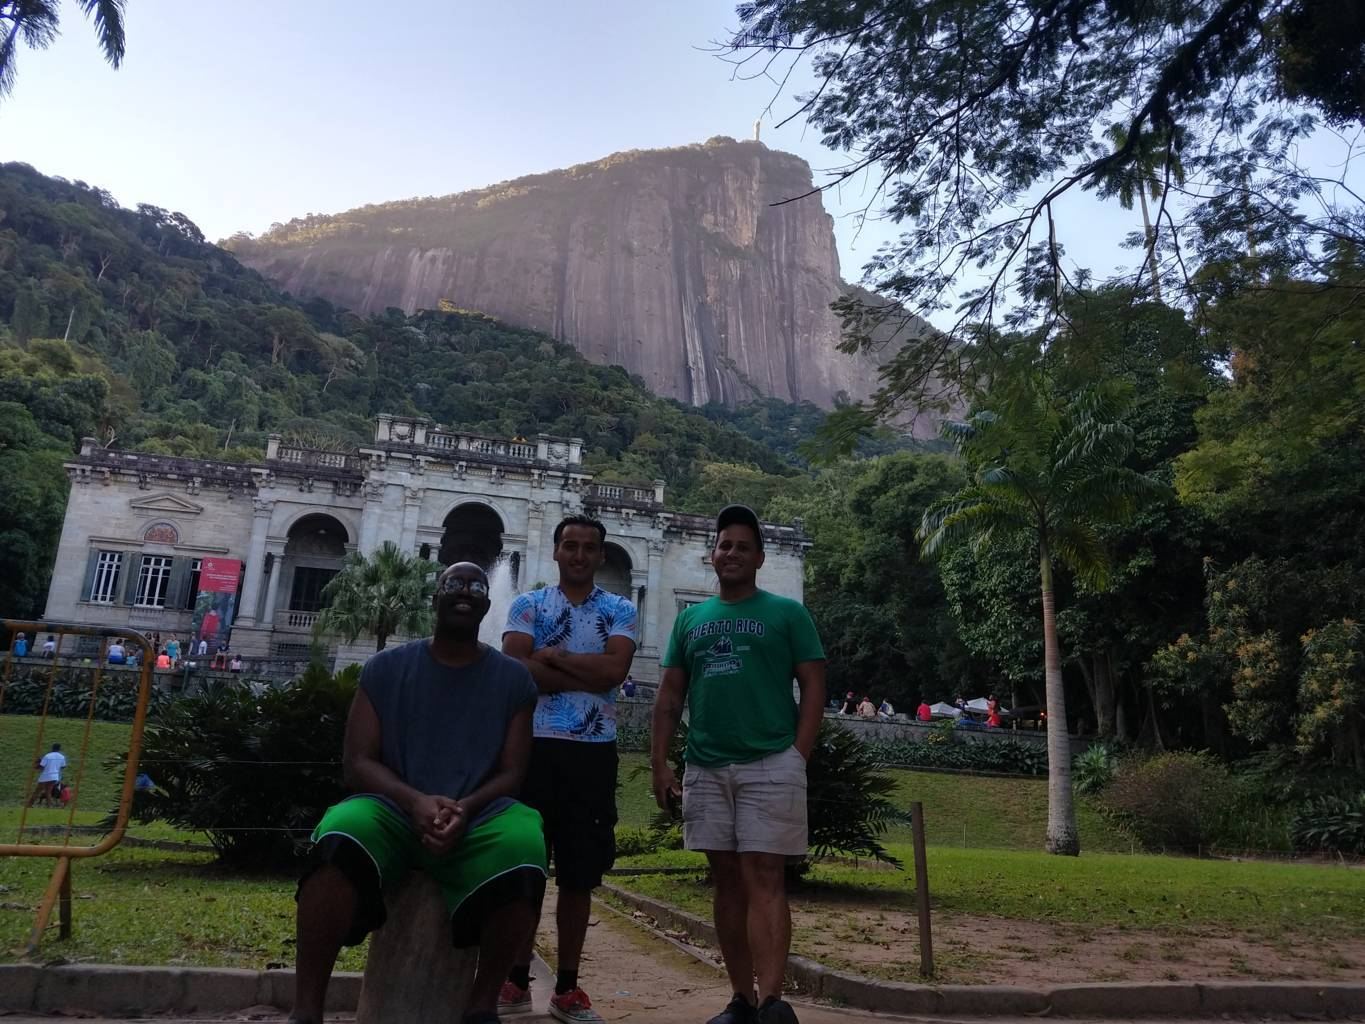 USA at Parque Lage